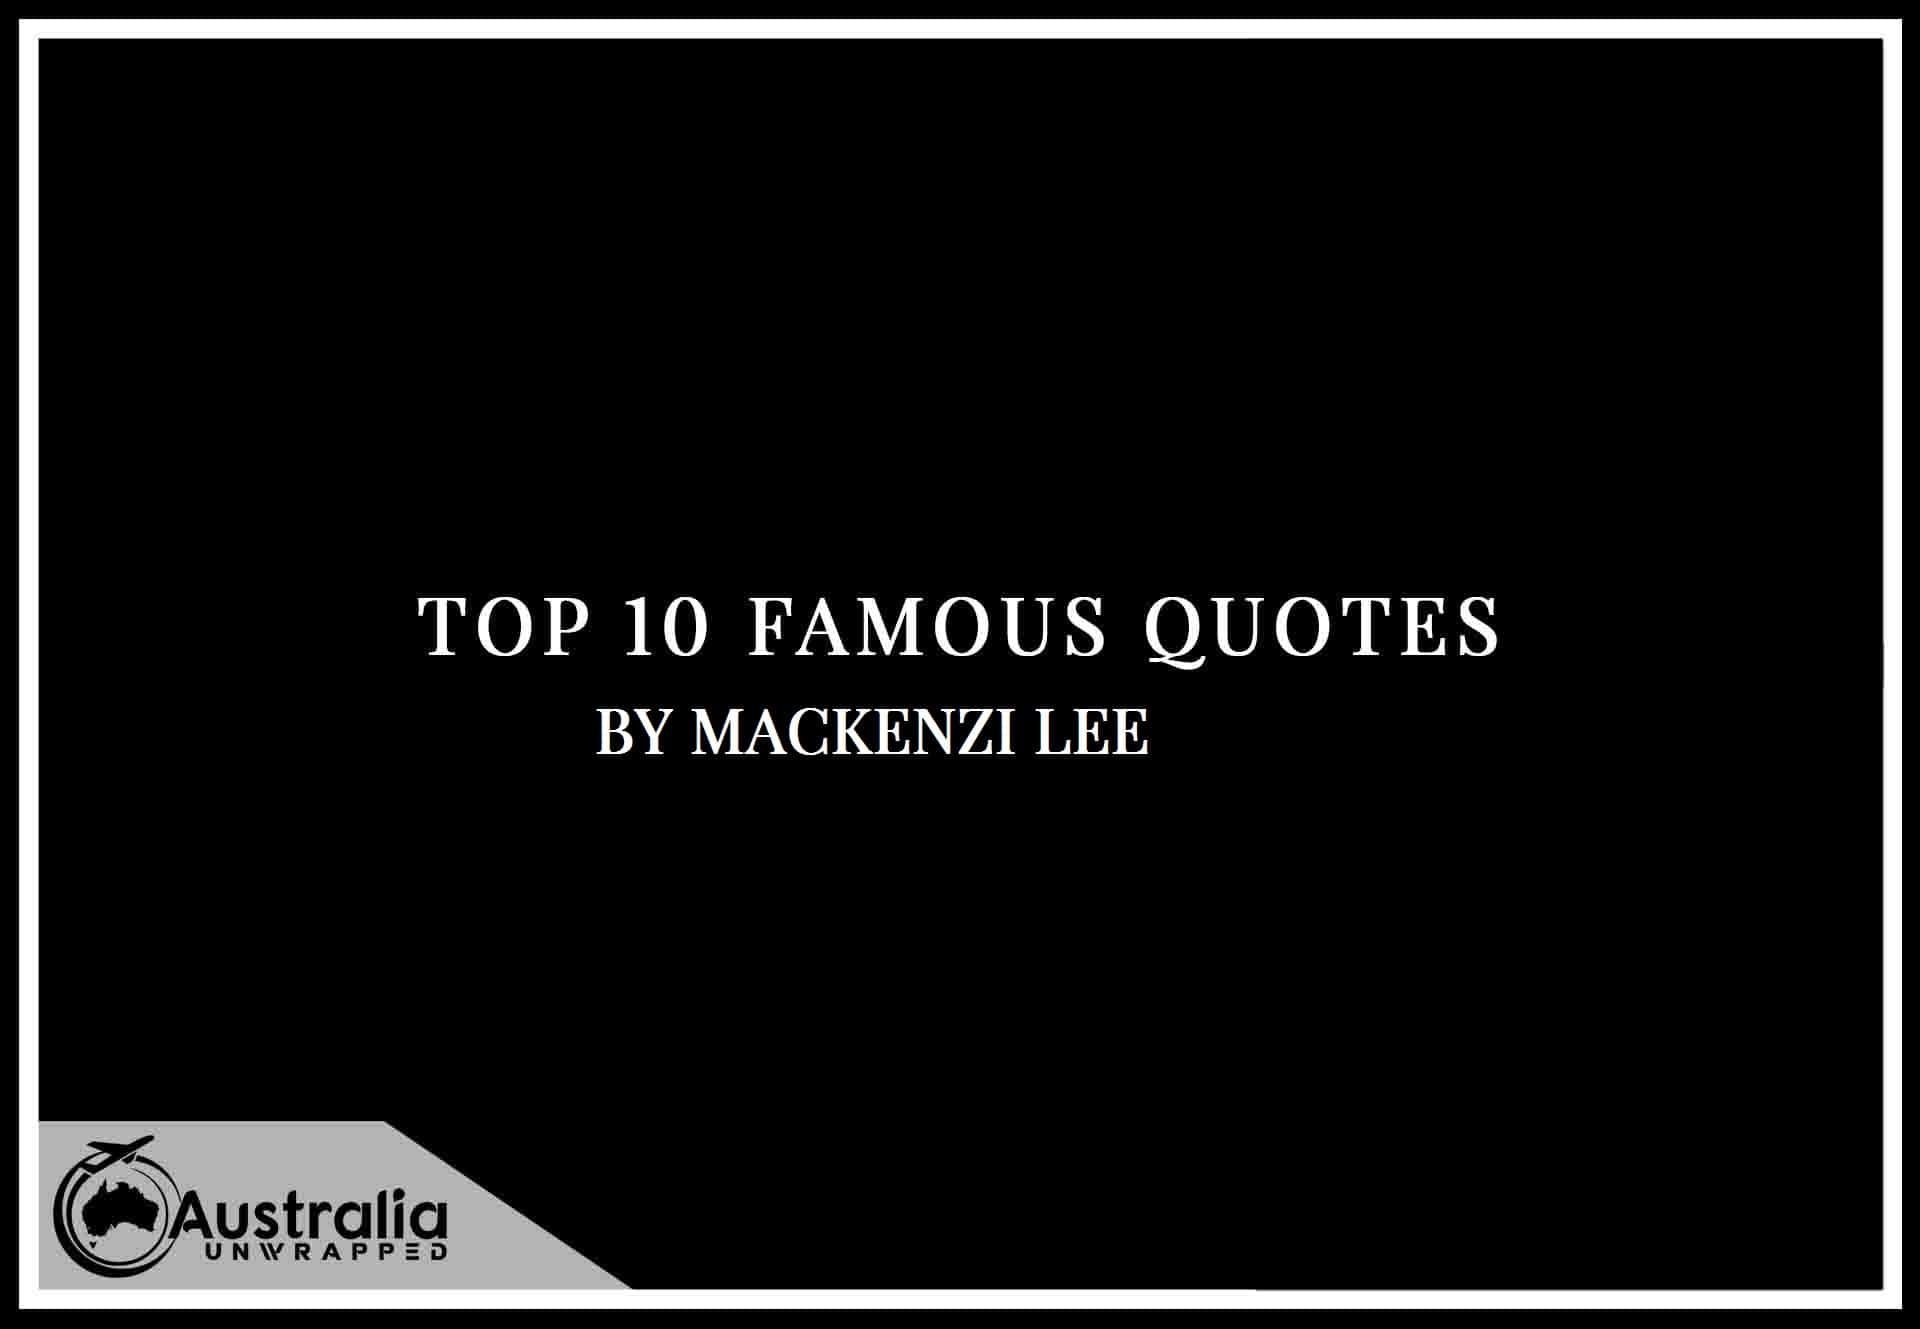 Mackenzi Lee's Top 10 Popular and Famous Quotes